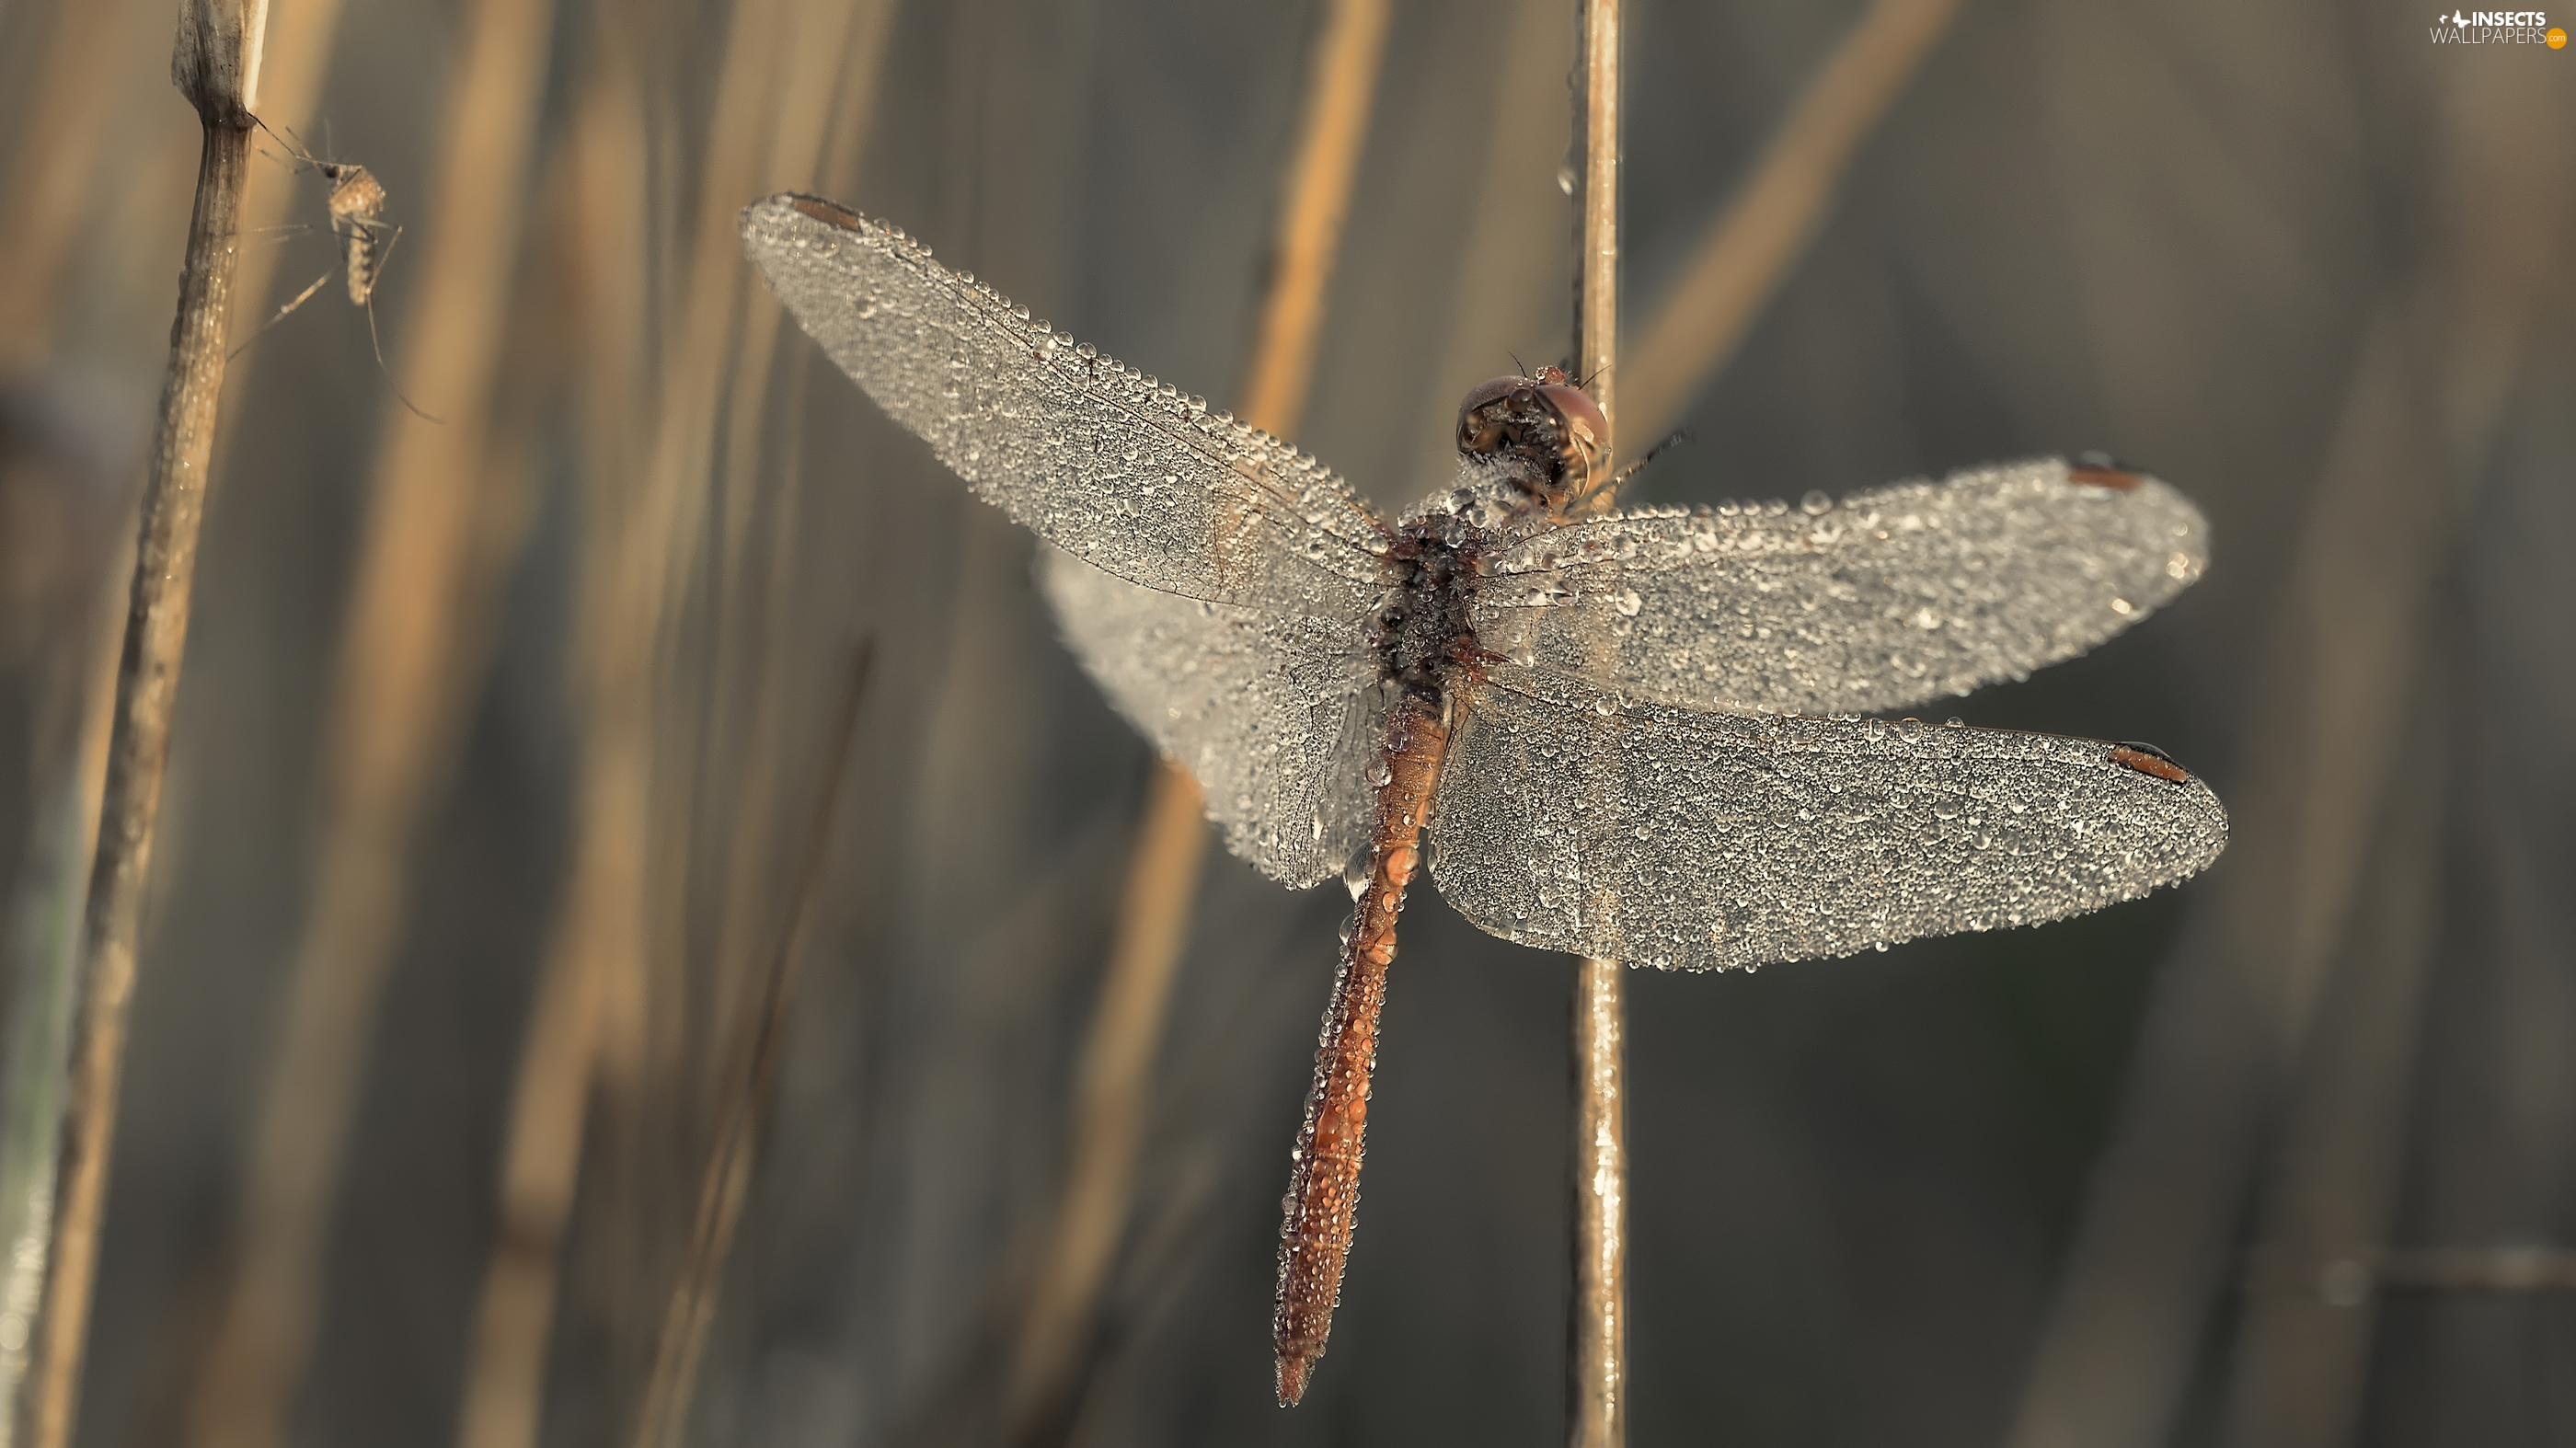 dragon-fly, wings, drops, wet